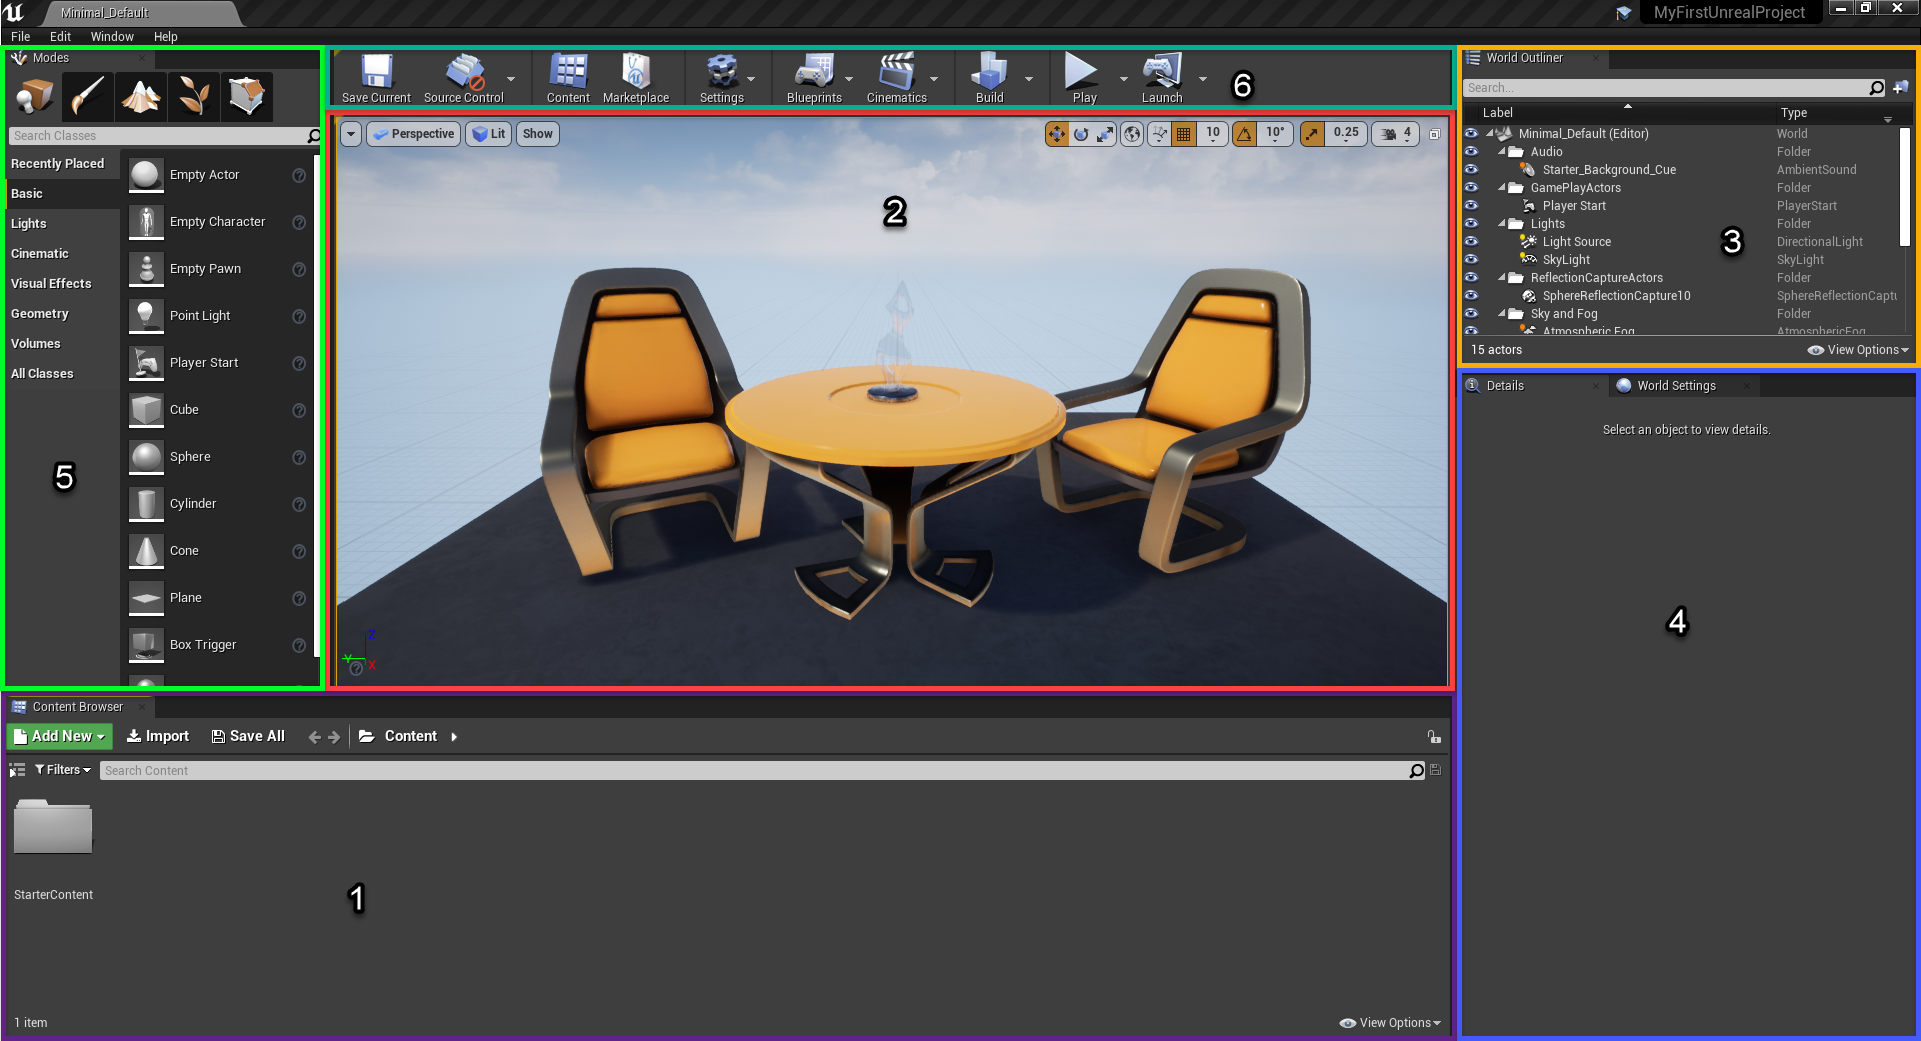 Unreal Engine with various viewports circled